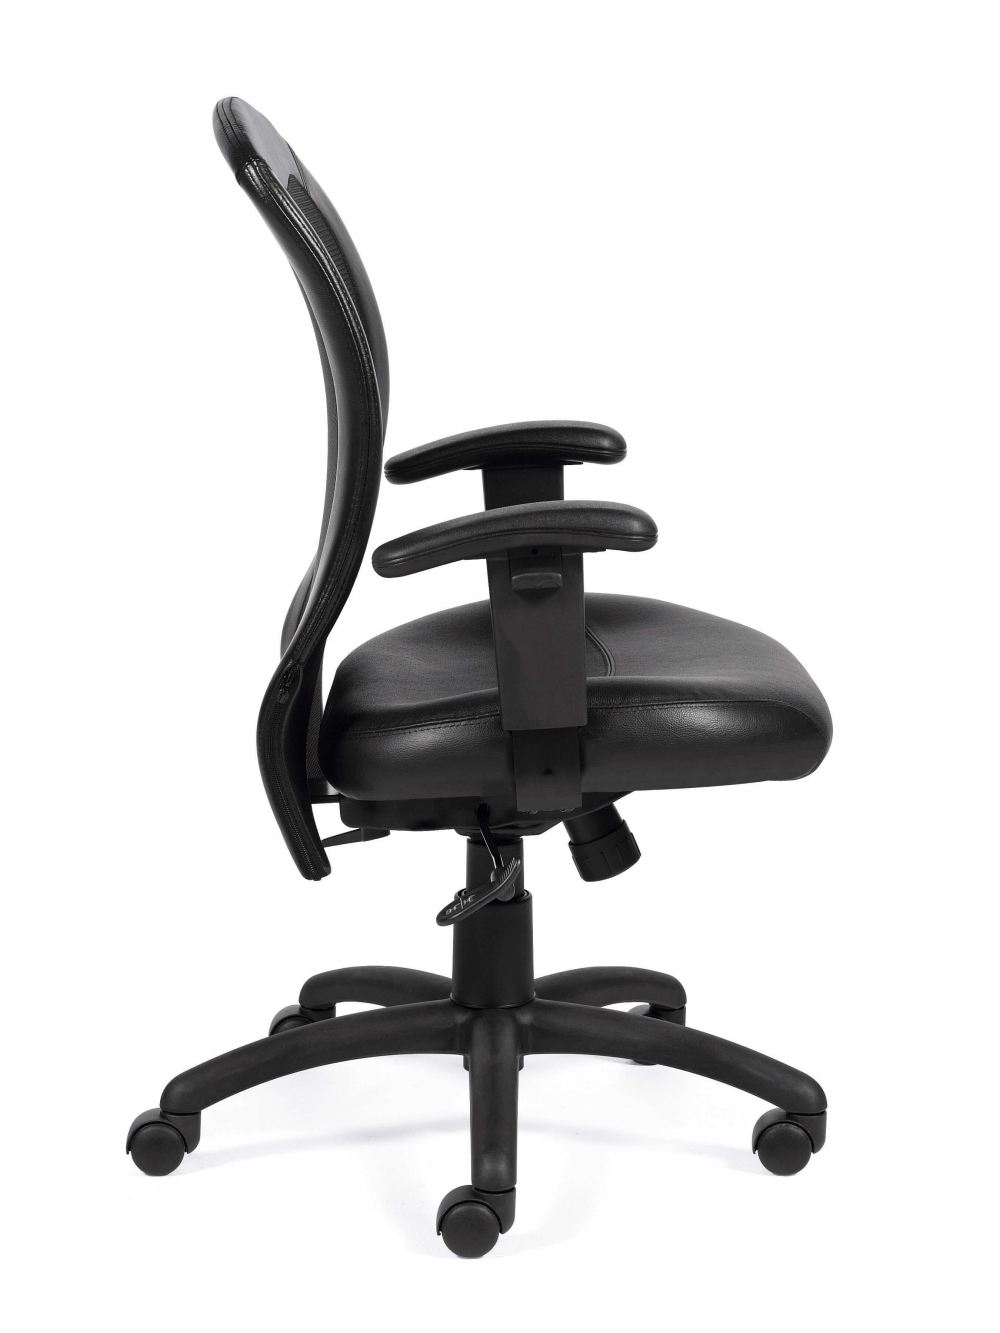 Contemporary office chair side view